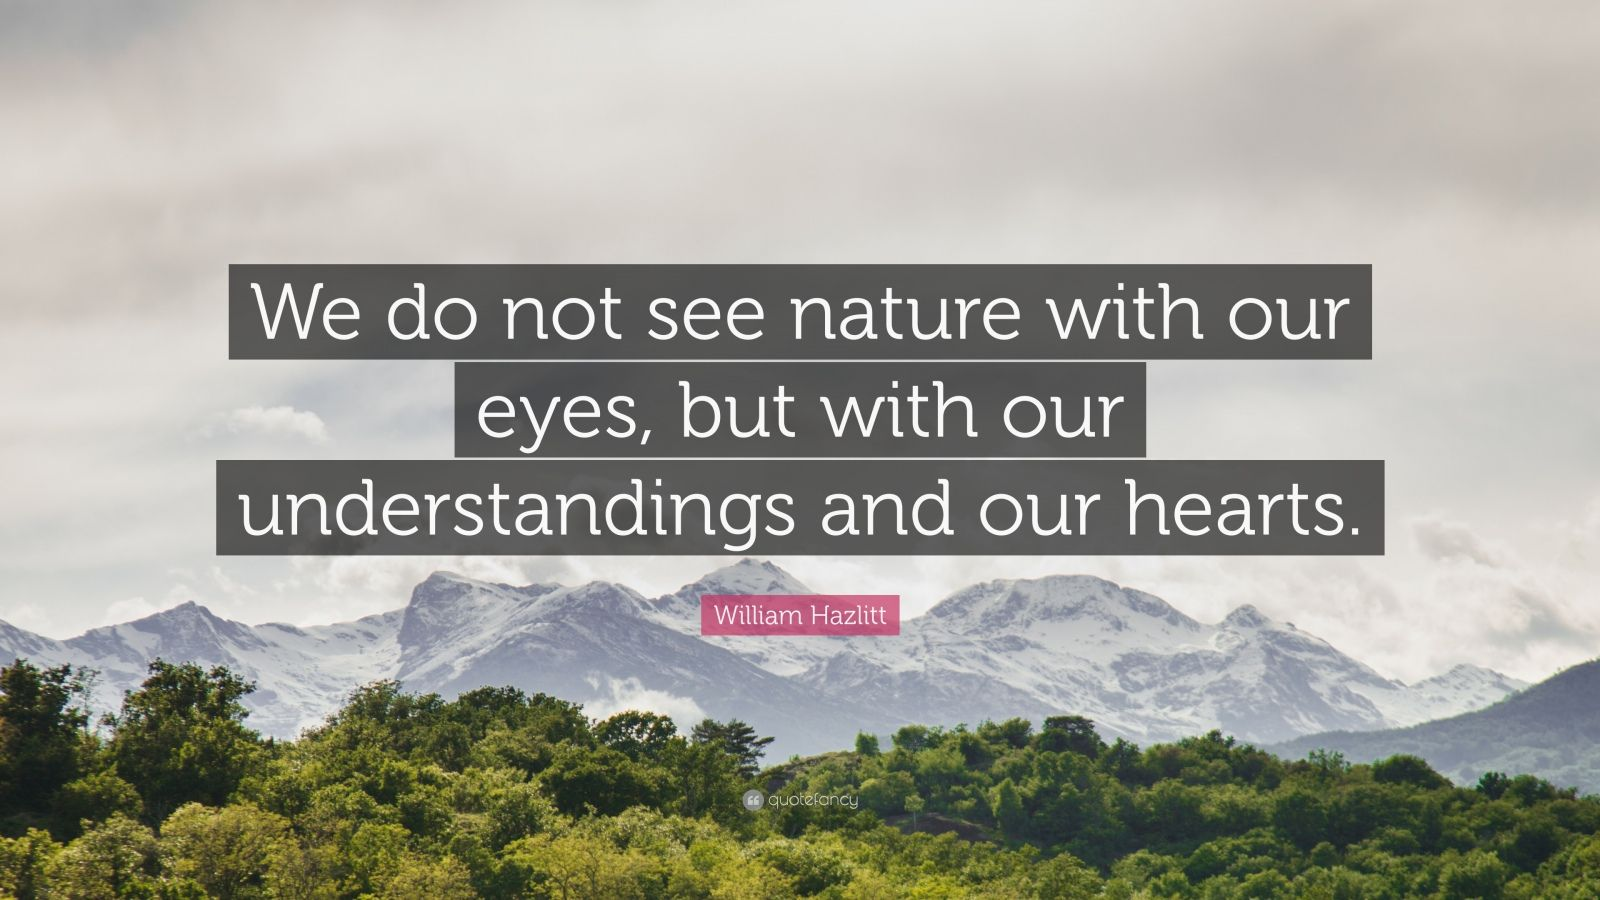 """William Hazlitt Quote: """"We do not see nature with our eyes, but with our understandings and our hearts."""""""